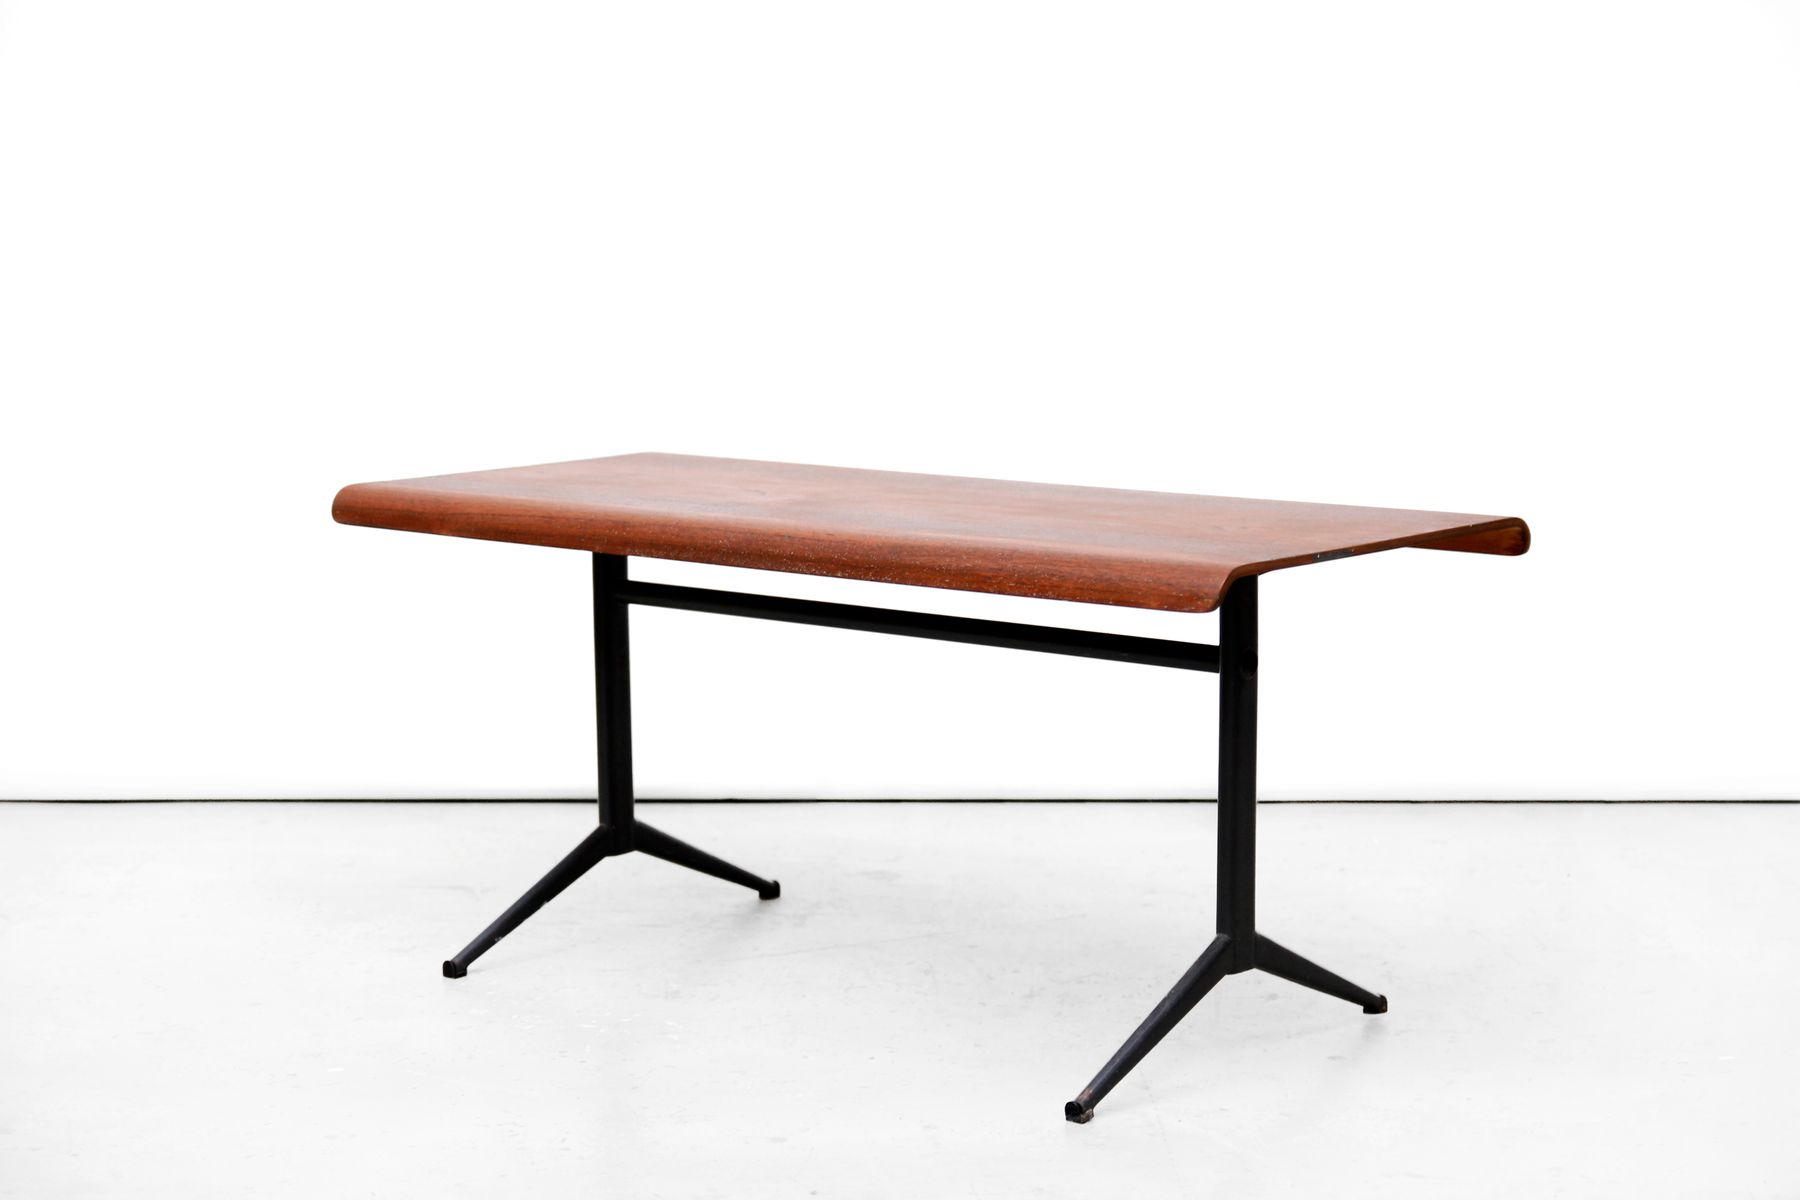 Euroika Minimalist Coffee Table By Friso Kramer For Auping 1963 For Sale At Pamono